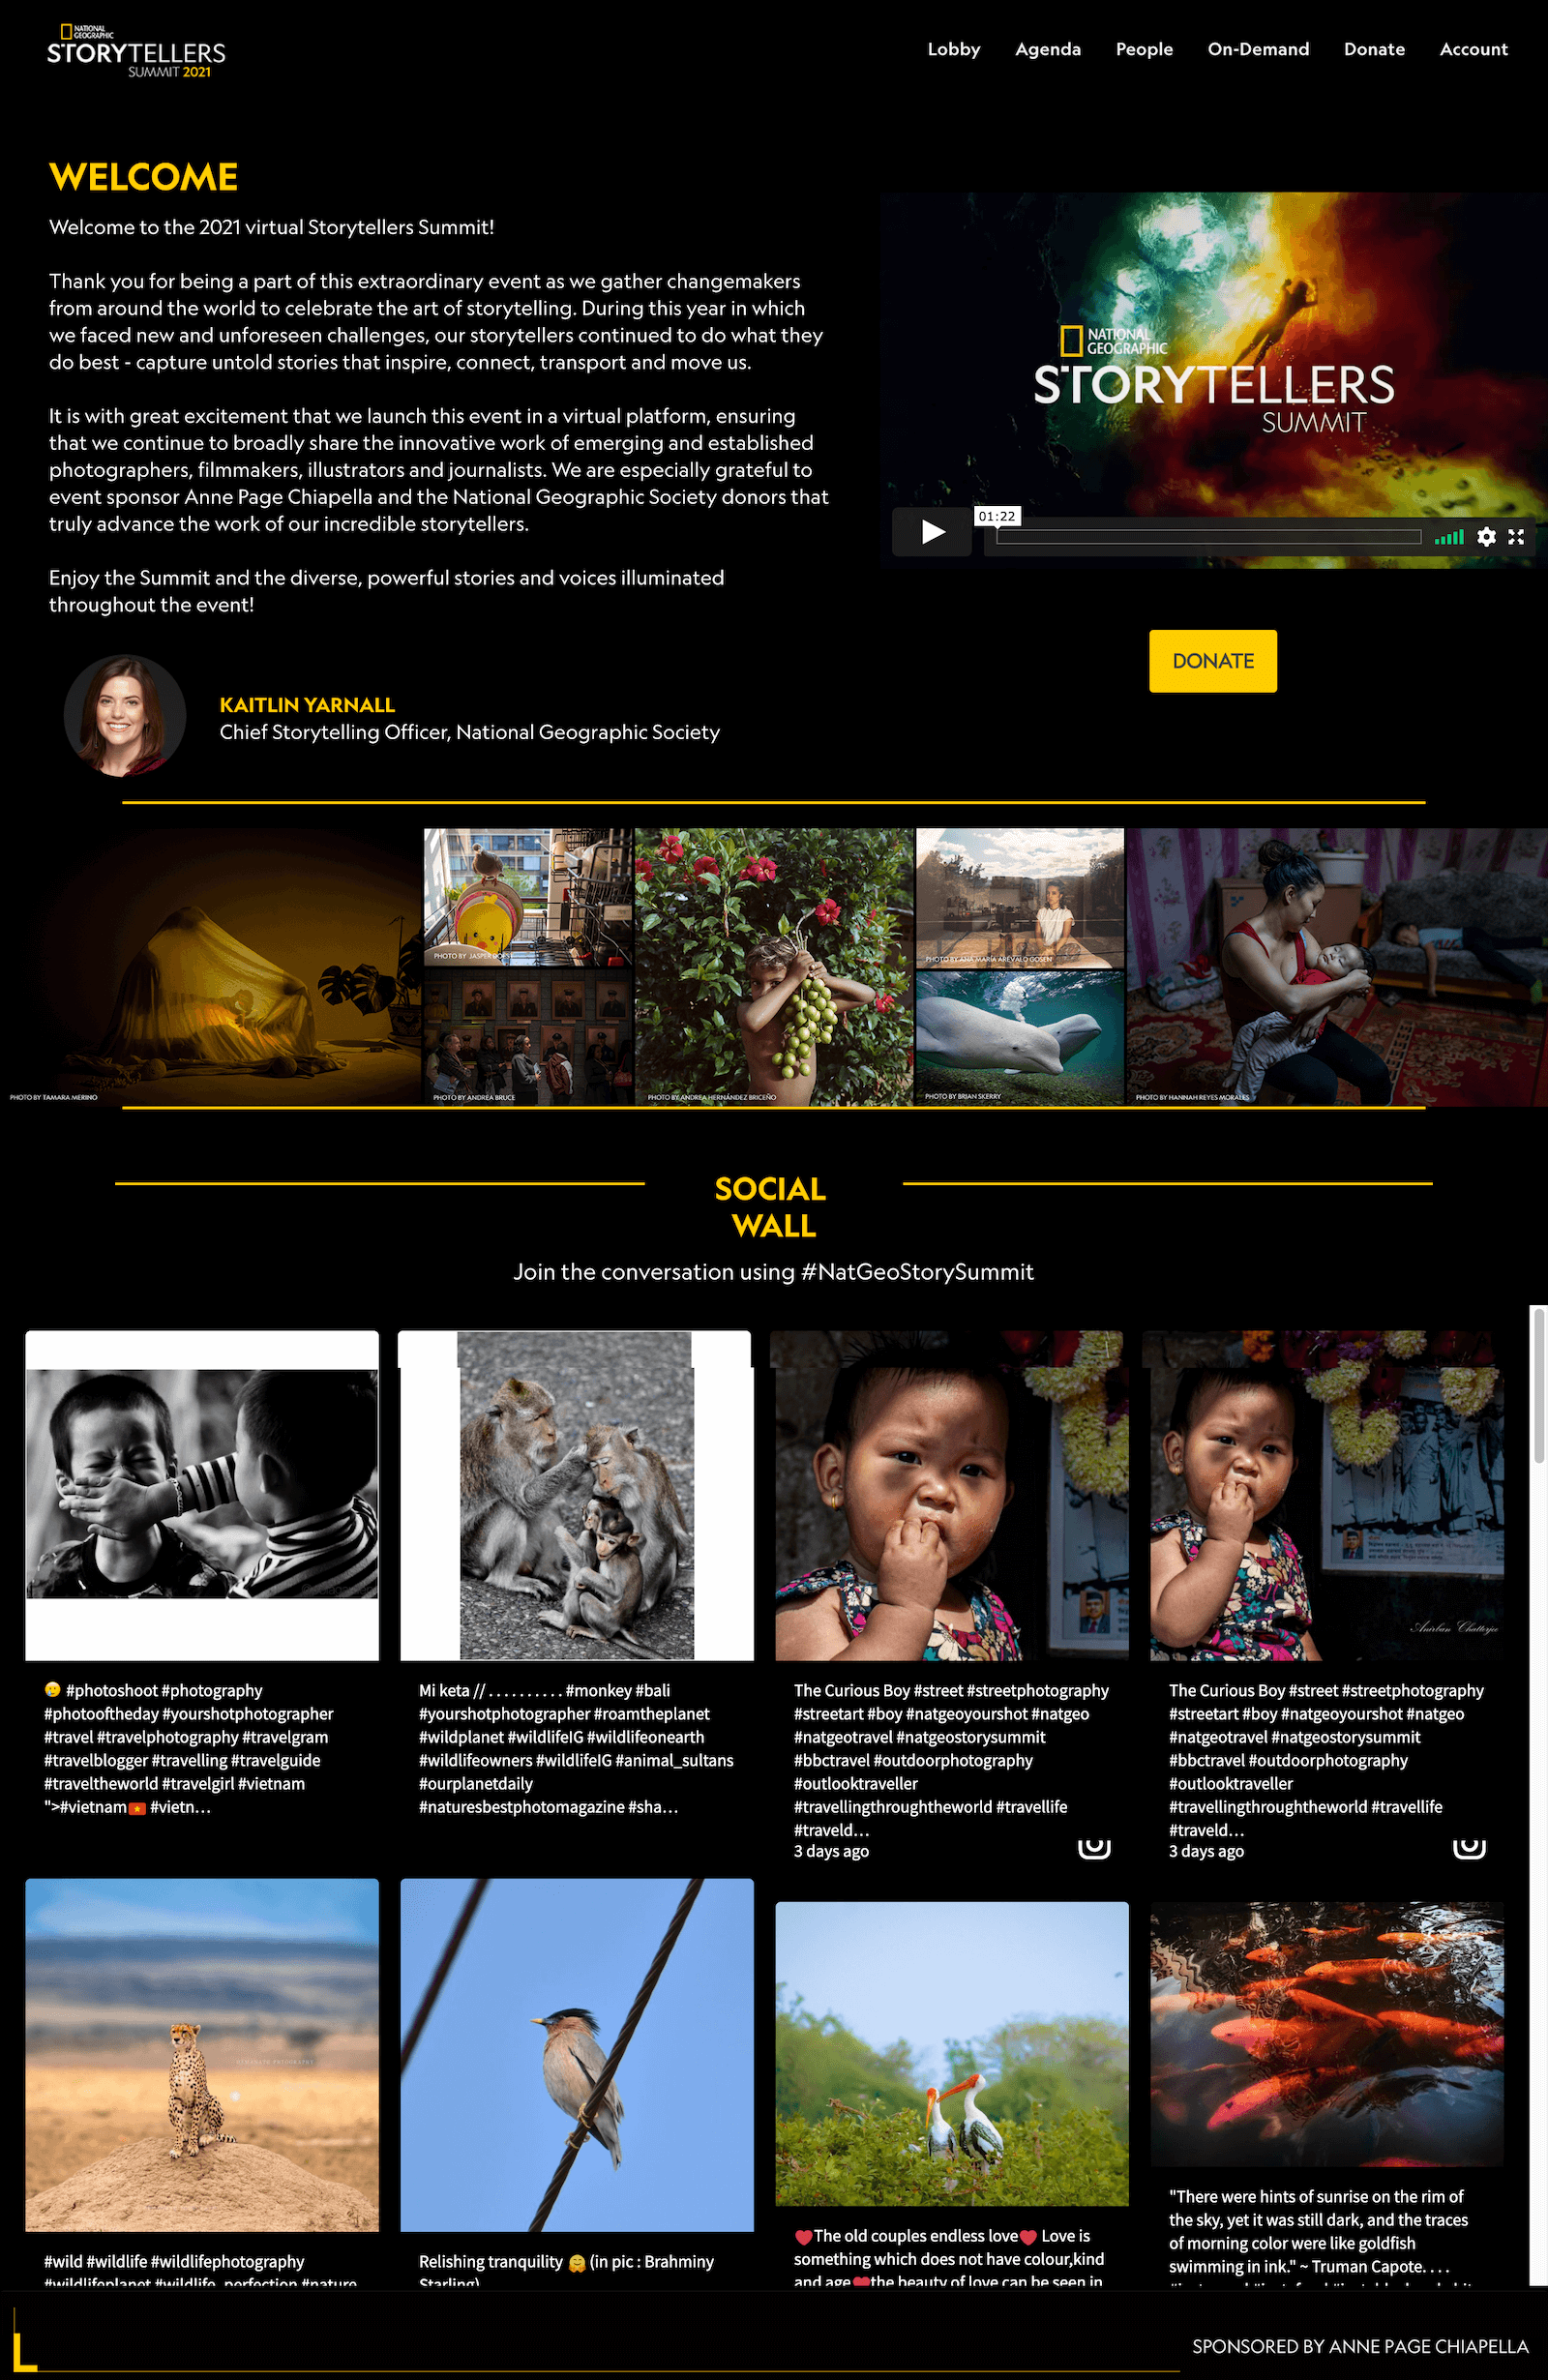 Screenshot of the National Geographic Storytellers Summit 2021 event website with an embed of the social wall. (Social wall beispiele)